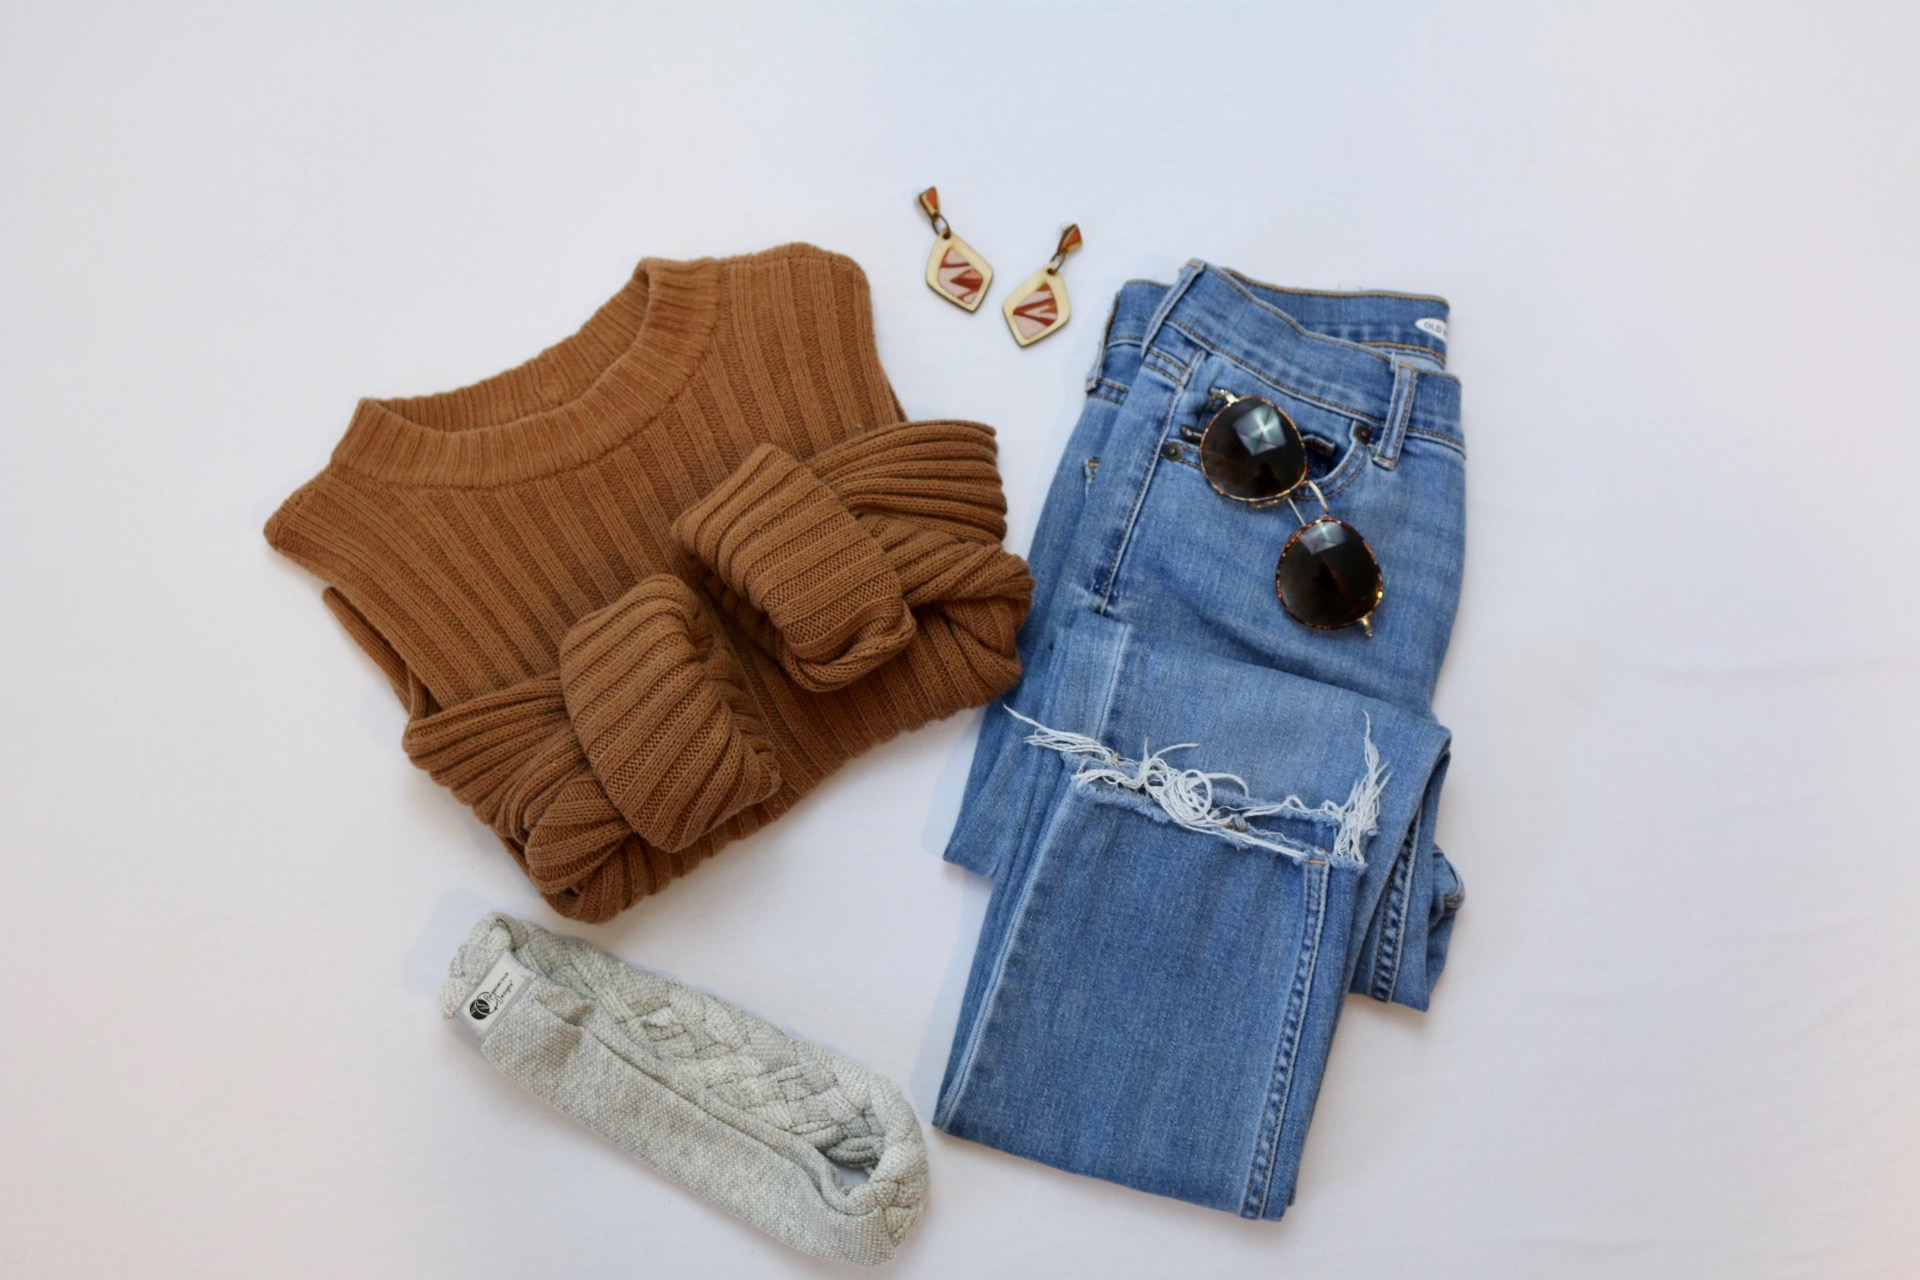 Burnt orange sweater with Regenerous Designs Dangle Earrings, The Big Braided Headband, and jeans.